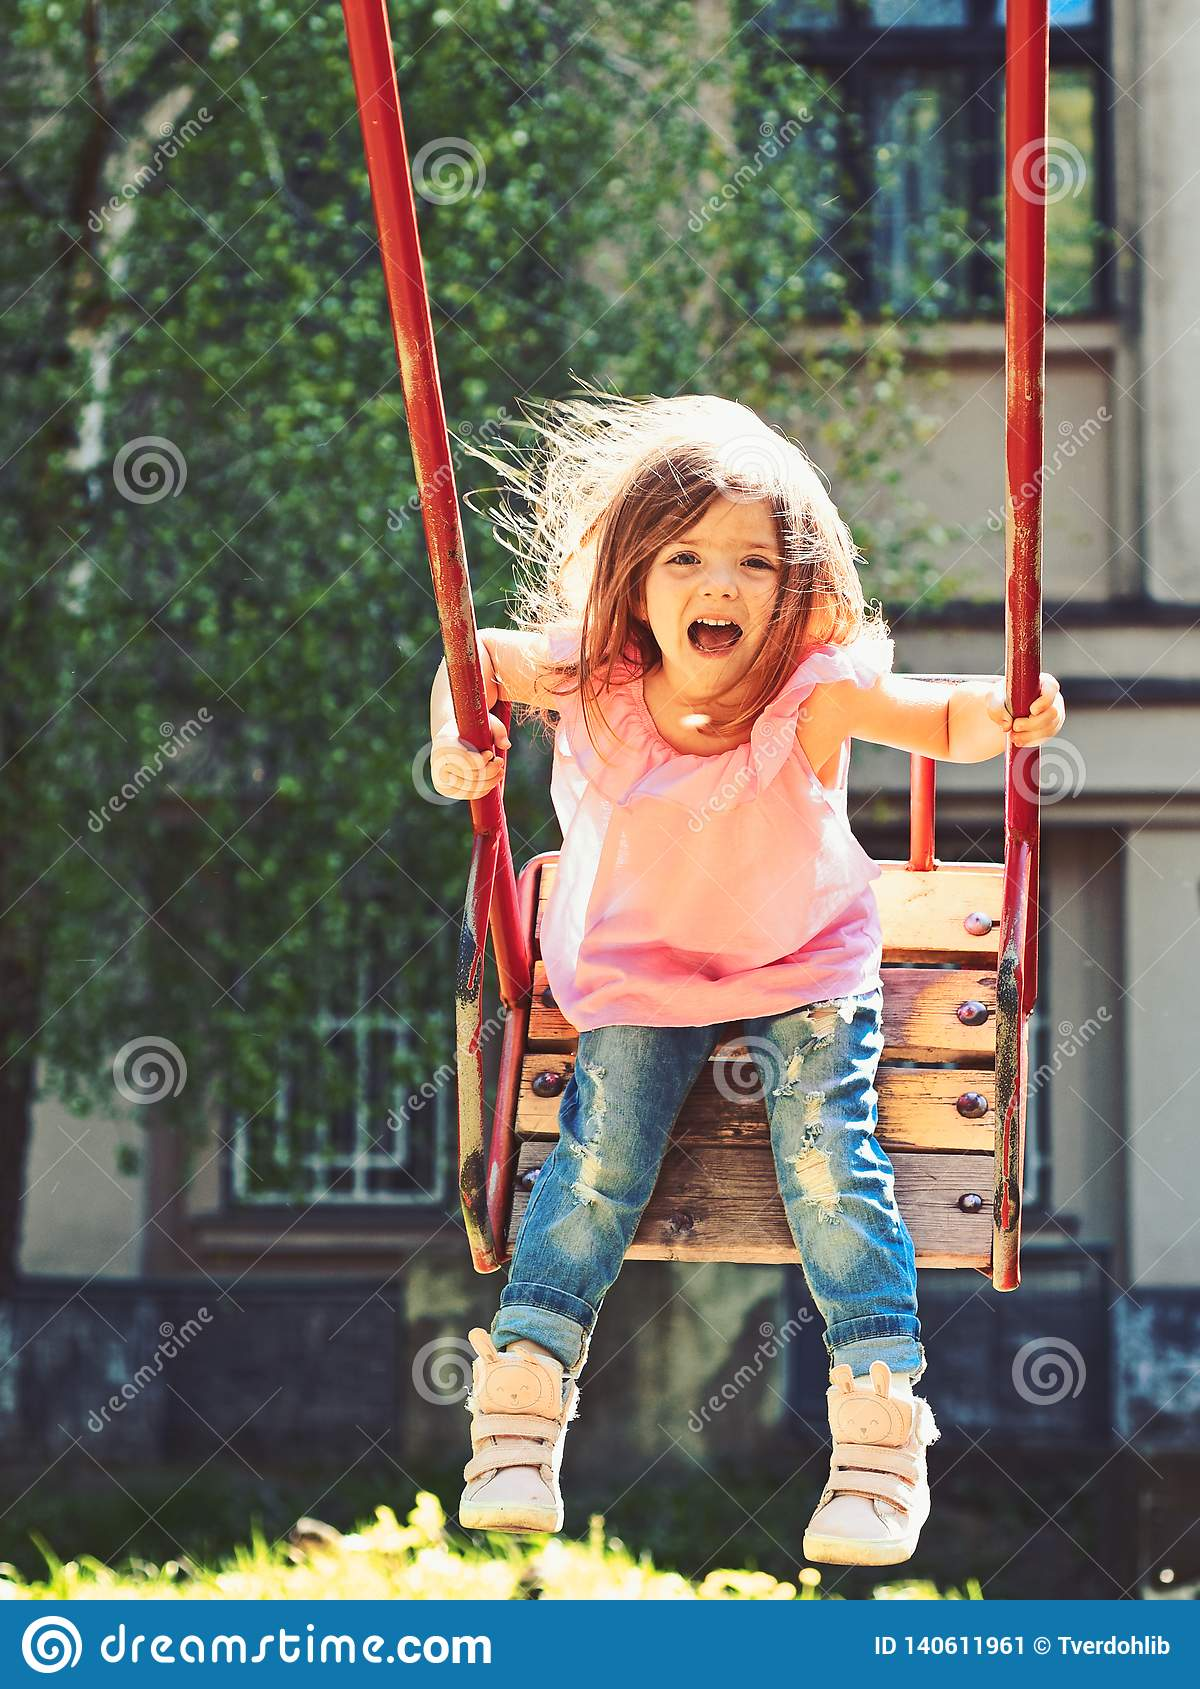 0be4827b5 Playground in park. Small kid playing in summer. Happy laughing child girl  on swing. romantic little girl on the swing, sweet dreams. childhood  daydream . ...